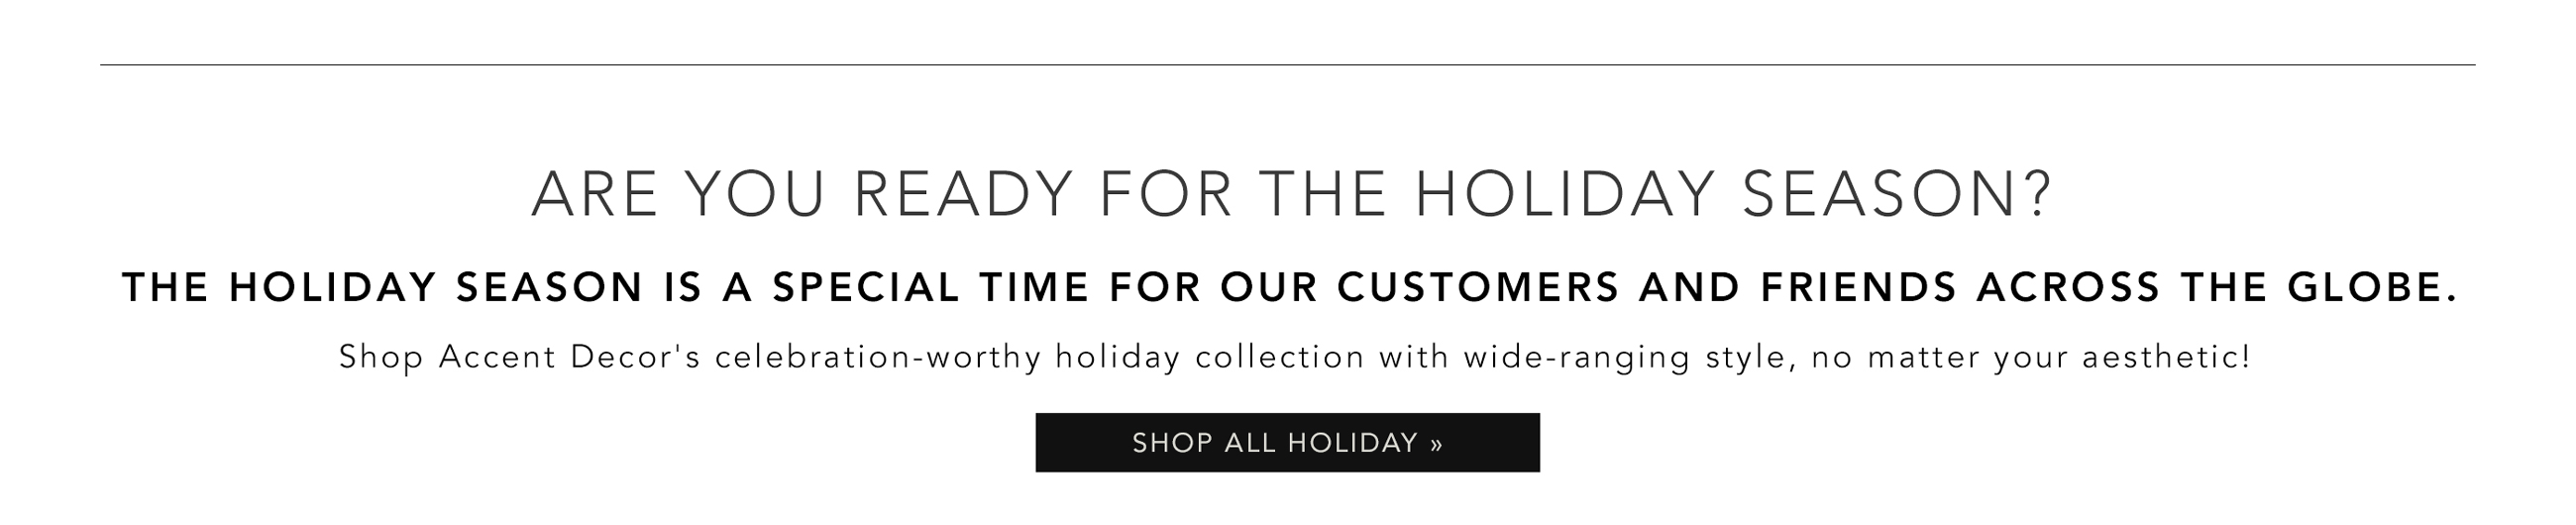 Shop Accent Decor's Celebration-worthy Holiday Collection